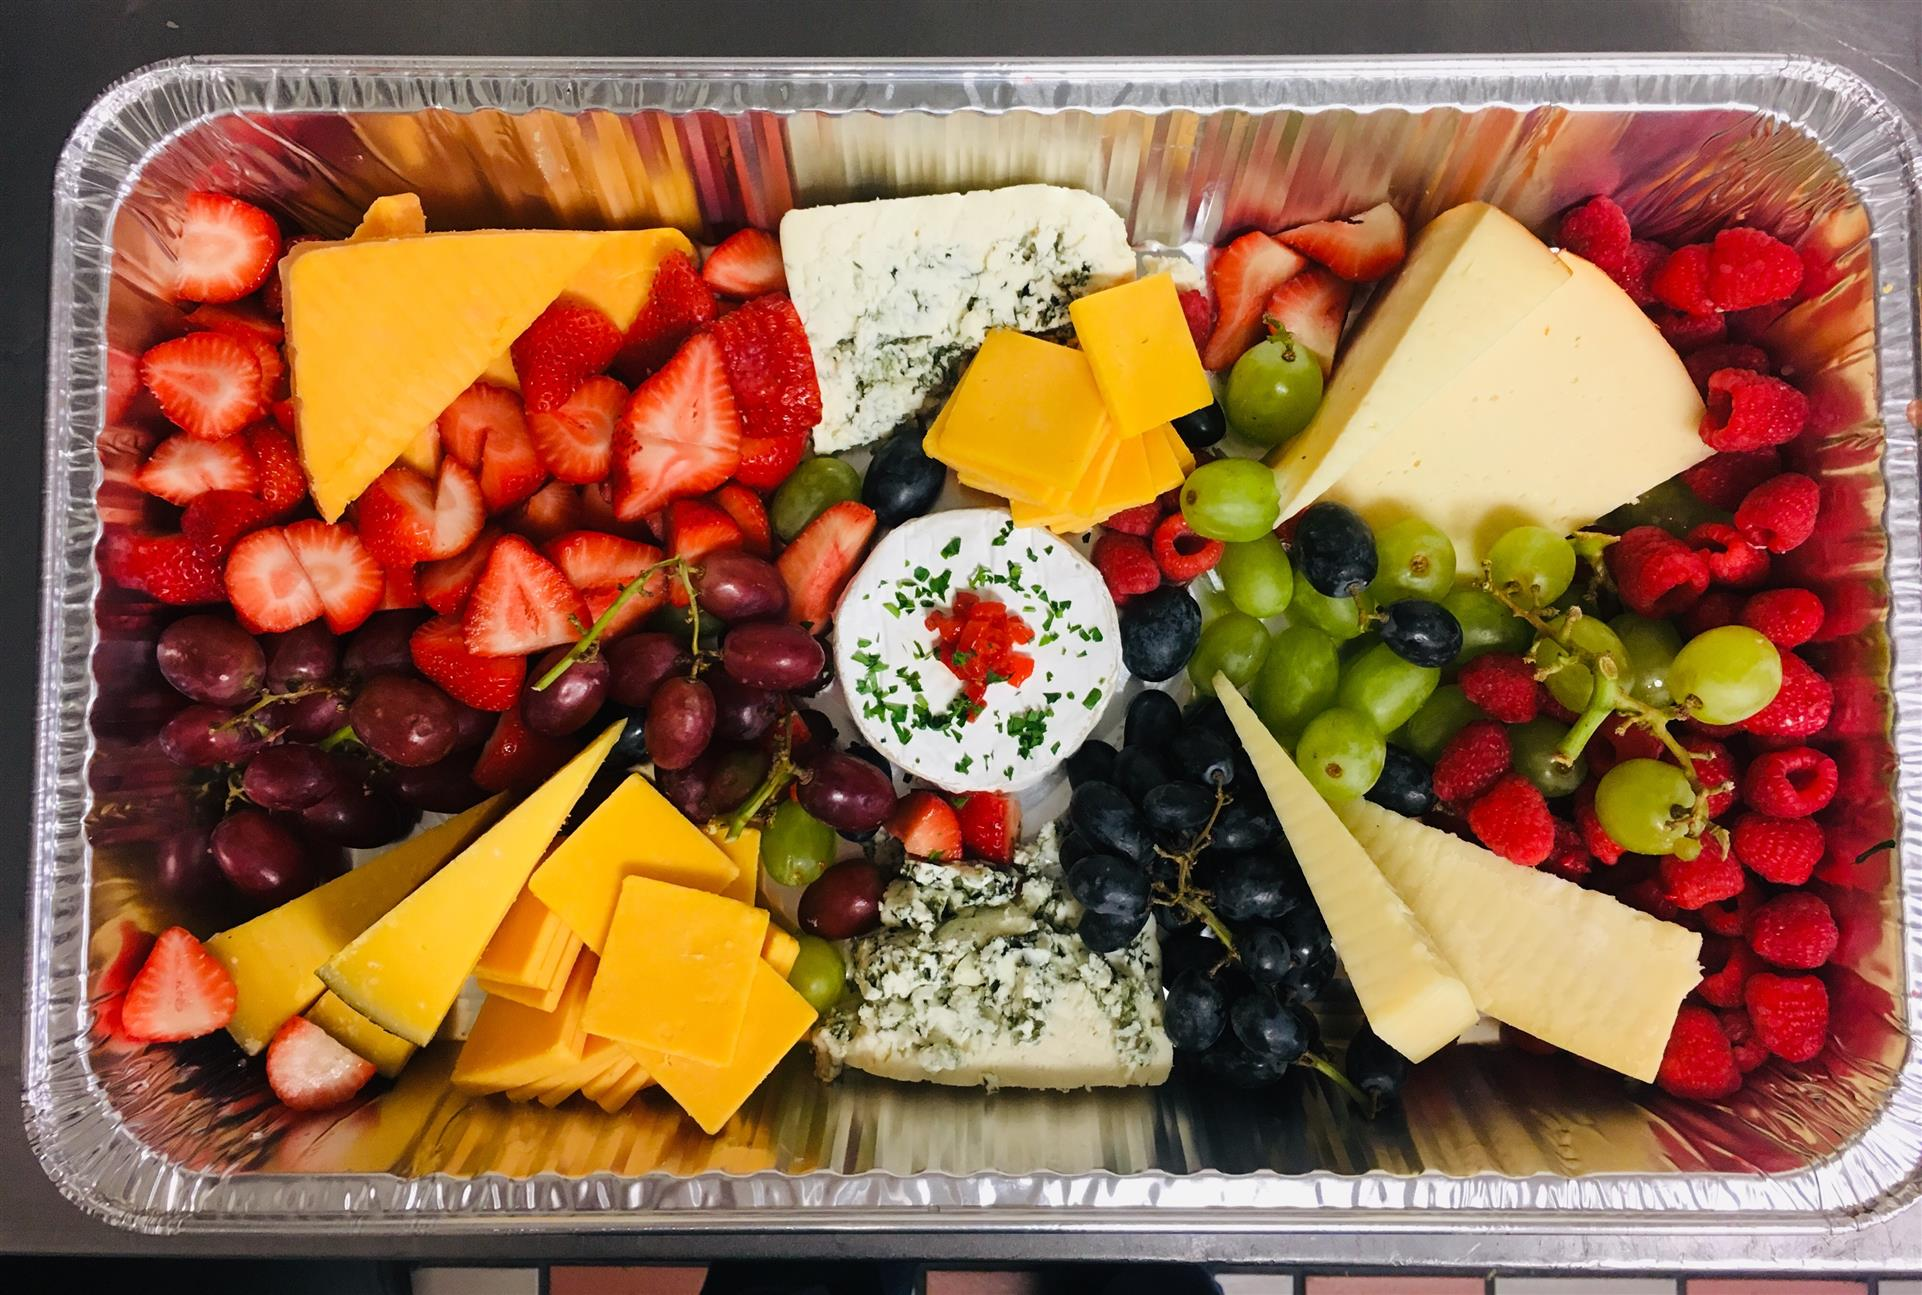 A foil tray filled with Strawberries, Grapes, Blueberries, Raspberries and assortment of Cheese